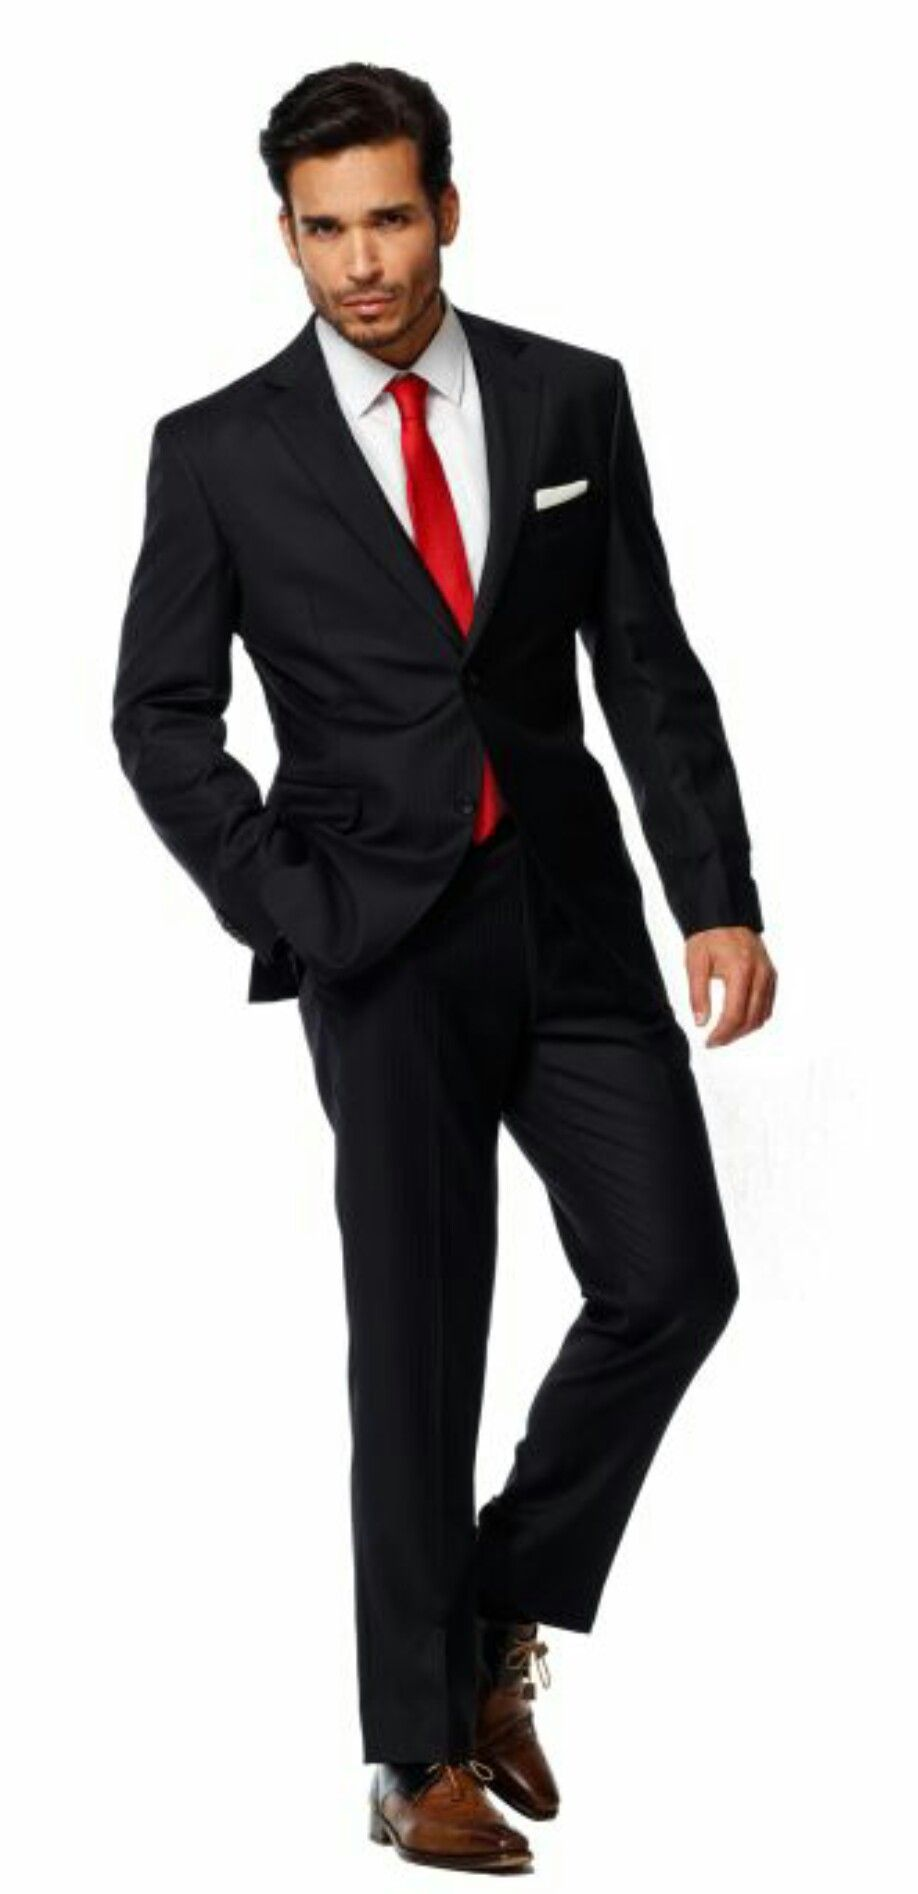 62535470de Black Suit Red Tie, Navy Pinstripe Suit, Black Tuxedo, White Suits, Black